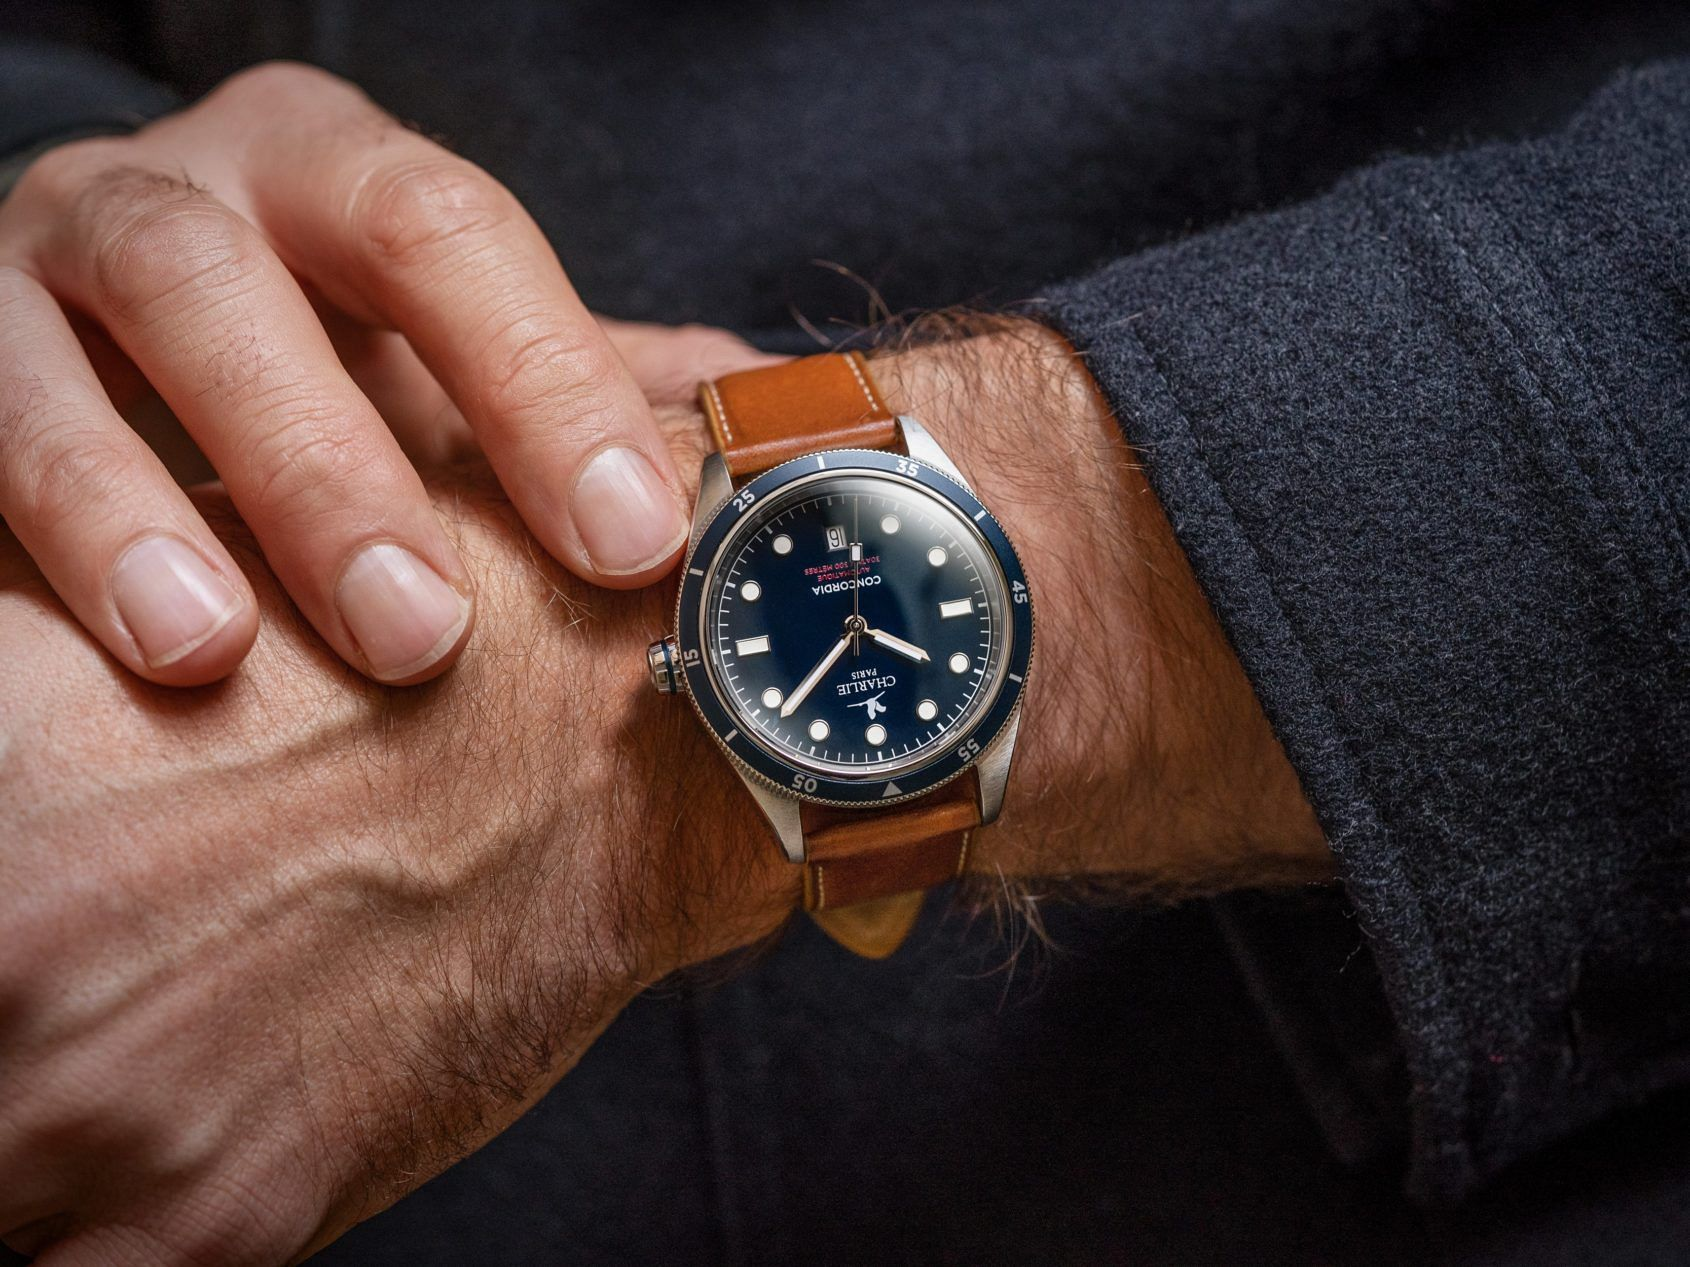 MICRO MONDAYS: The Charlie Paris Concordia Automatic offers vintage style tested in Antarctic blizzards